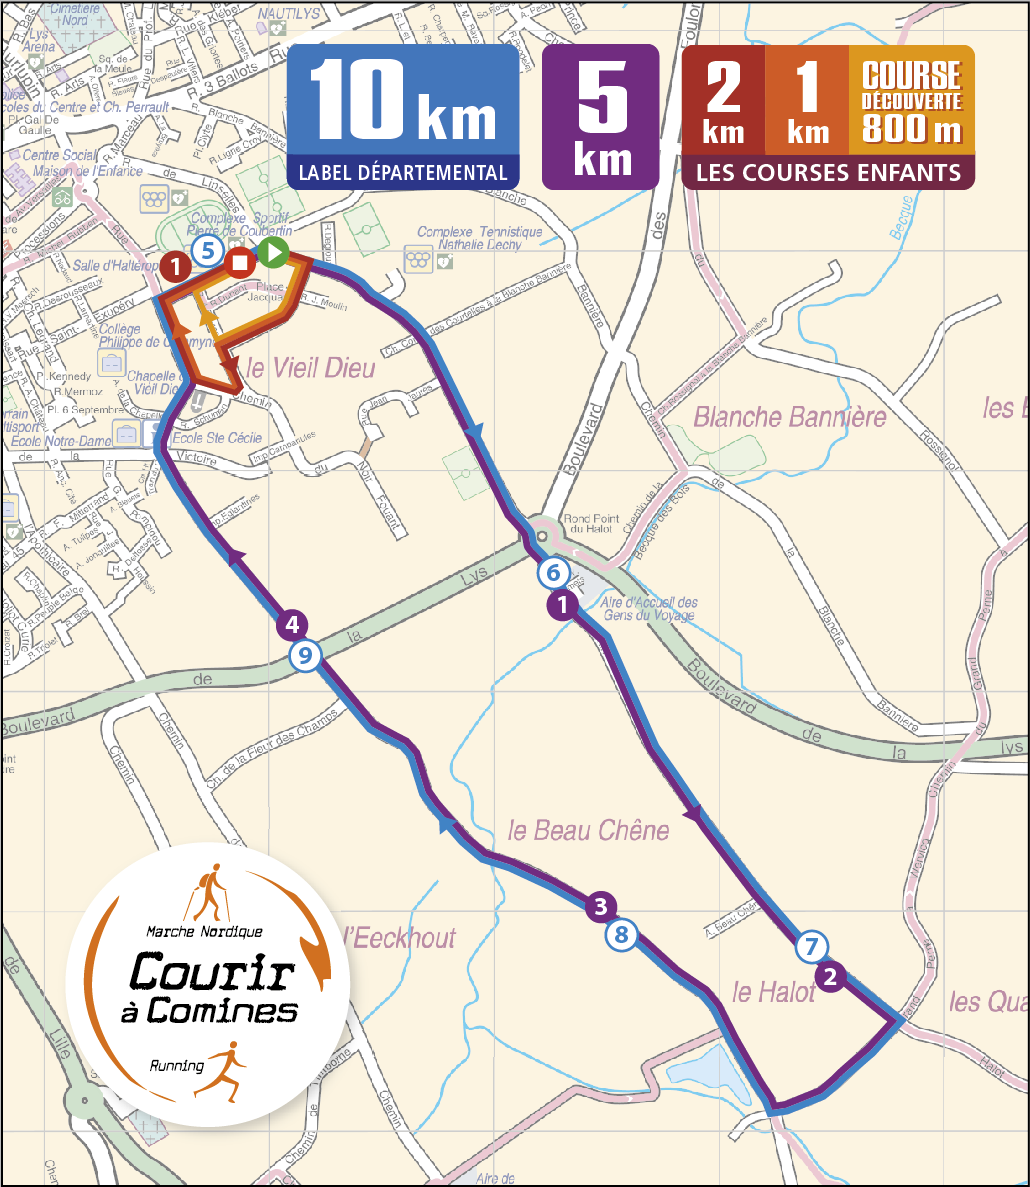 Parcours cdg 2019